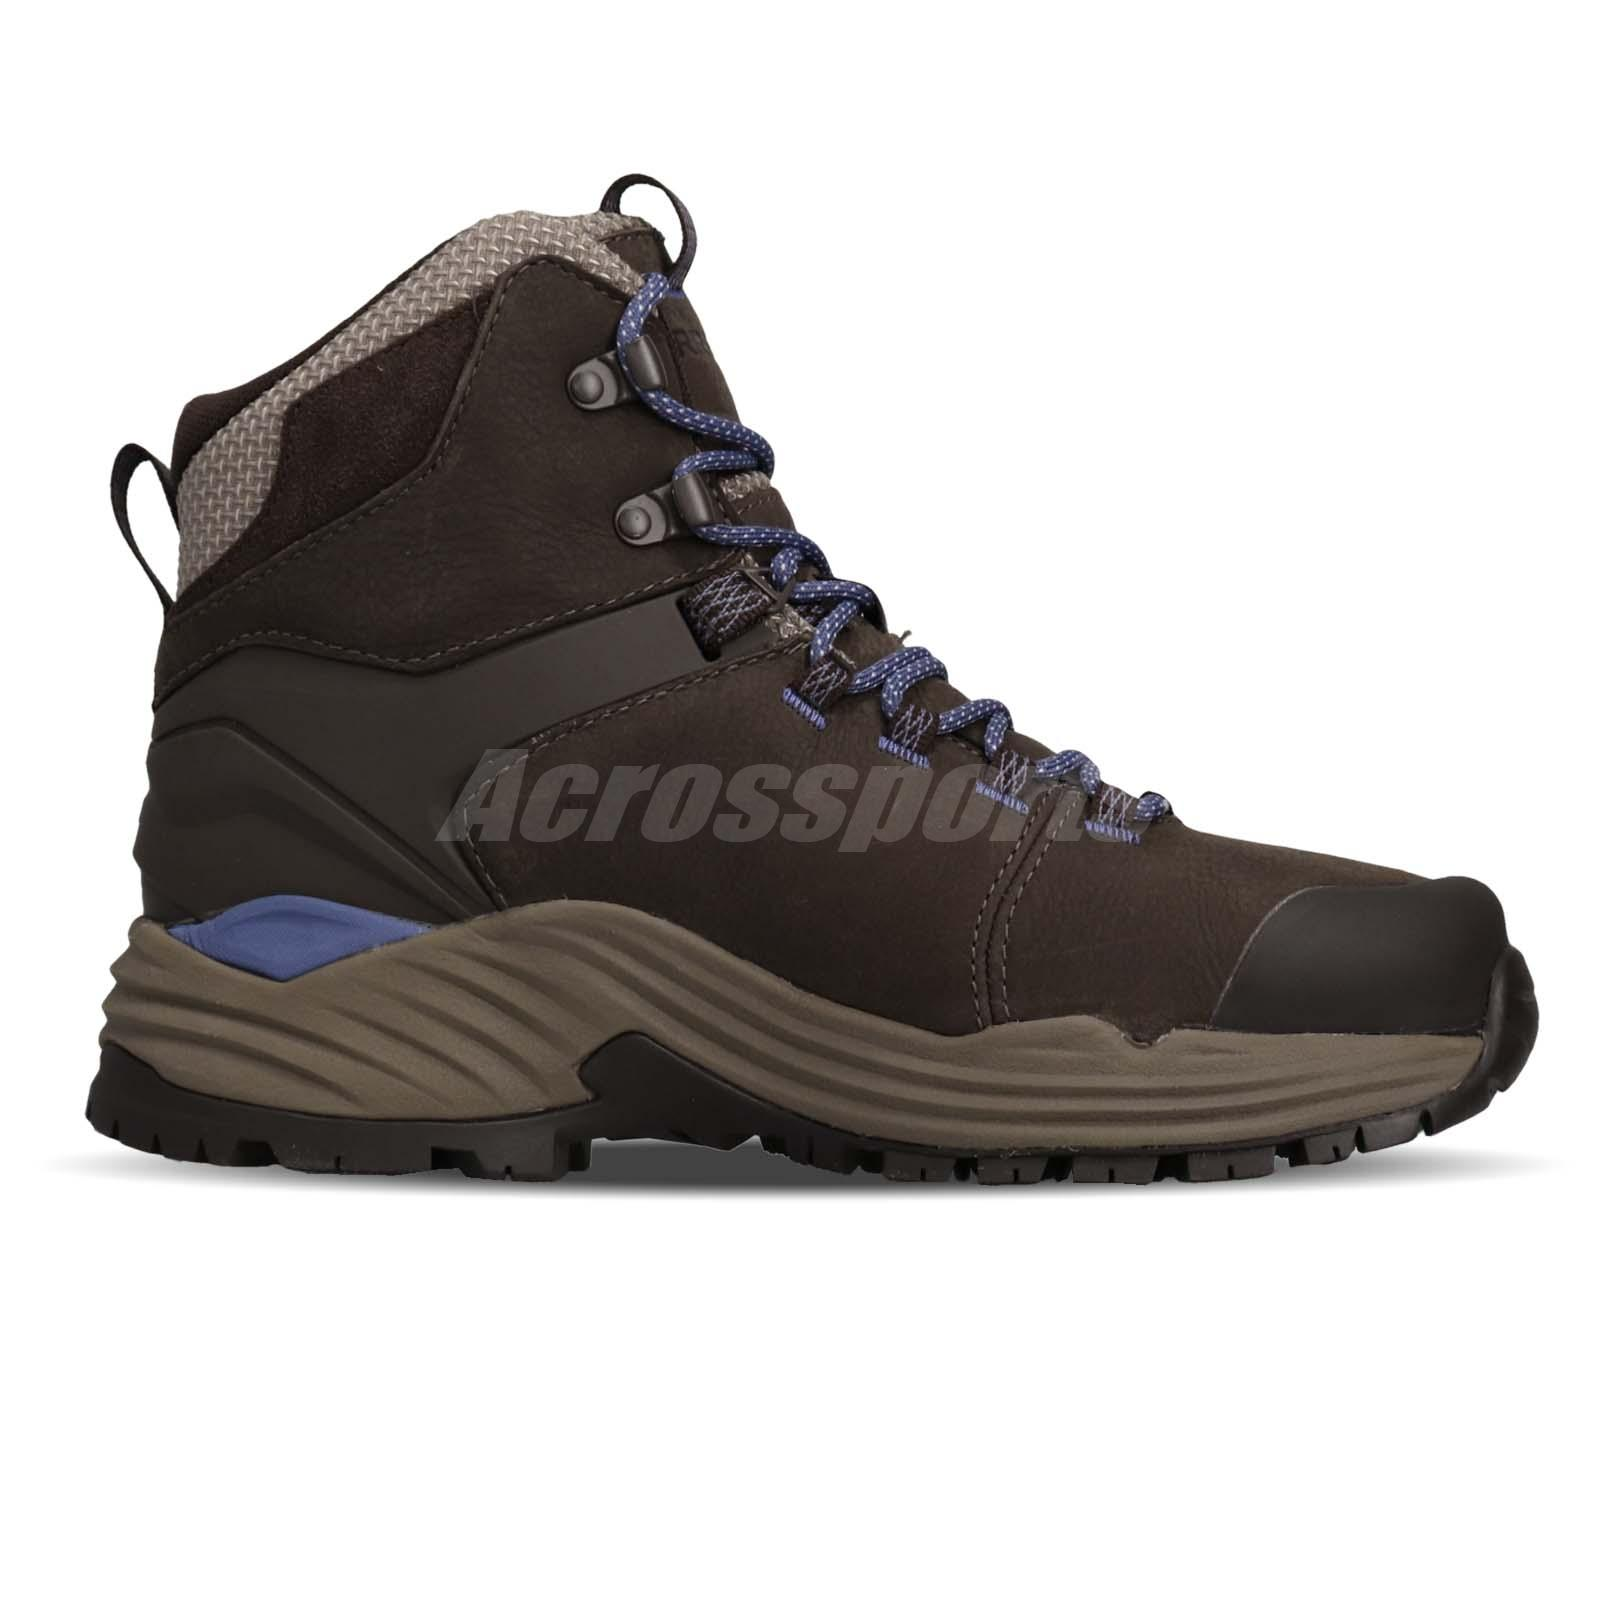 bb198795b92 Details about Merrell Phaserbound 2 Tall Waterproof Boulder Women Outdoors  Shoes Boots J52488